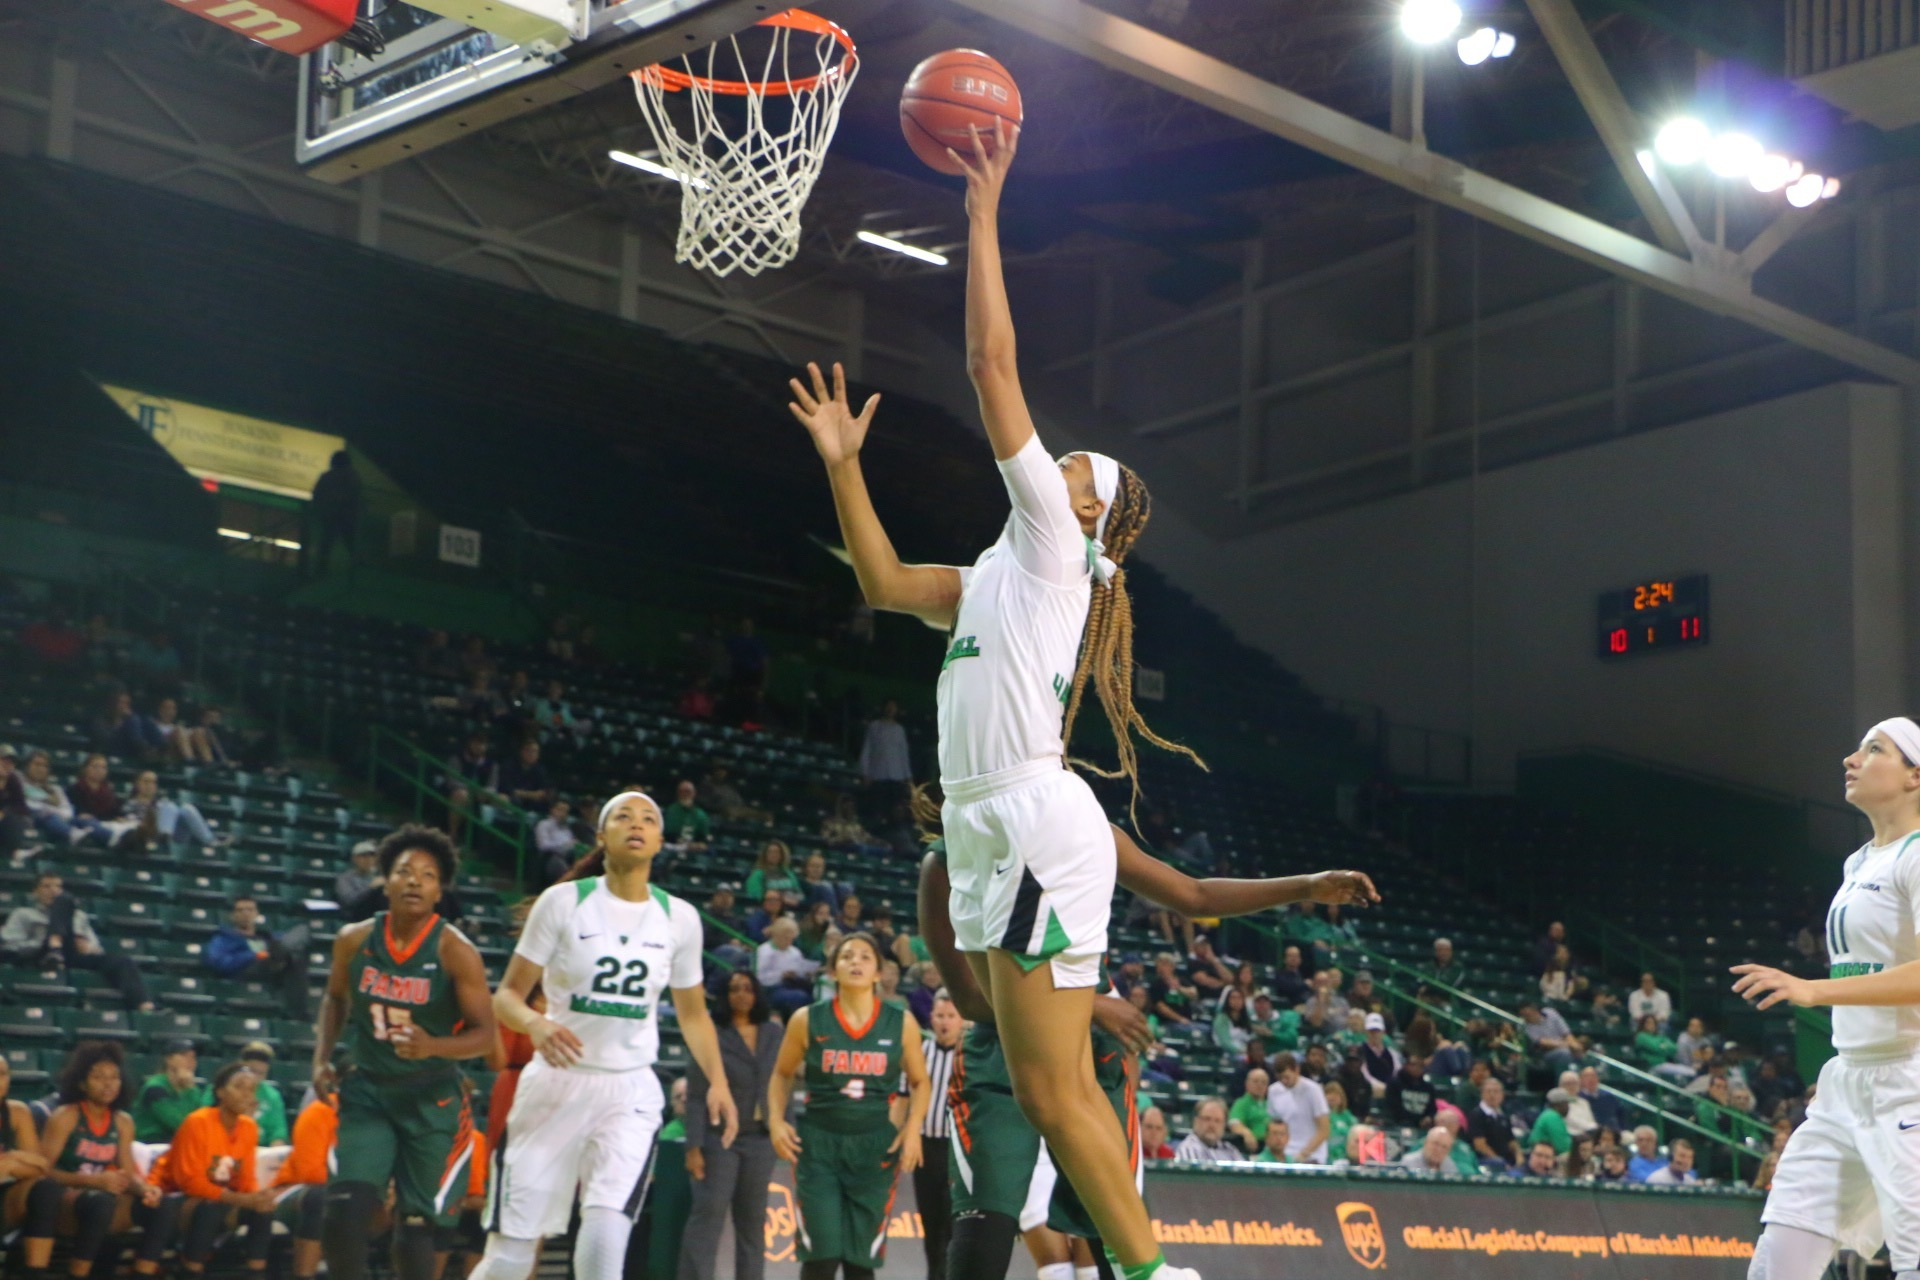 Redshirt senior Talequia Hamilton recorded 10 rebounds and nine points at UNC.